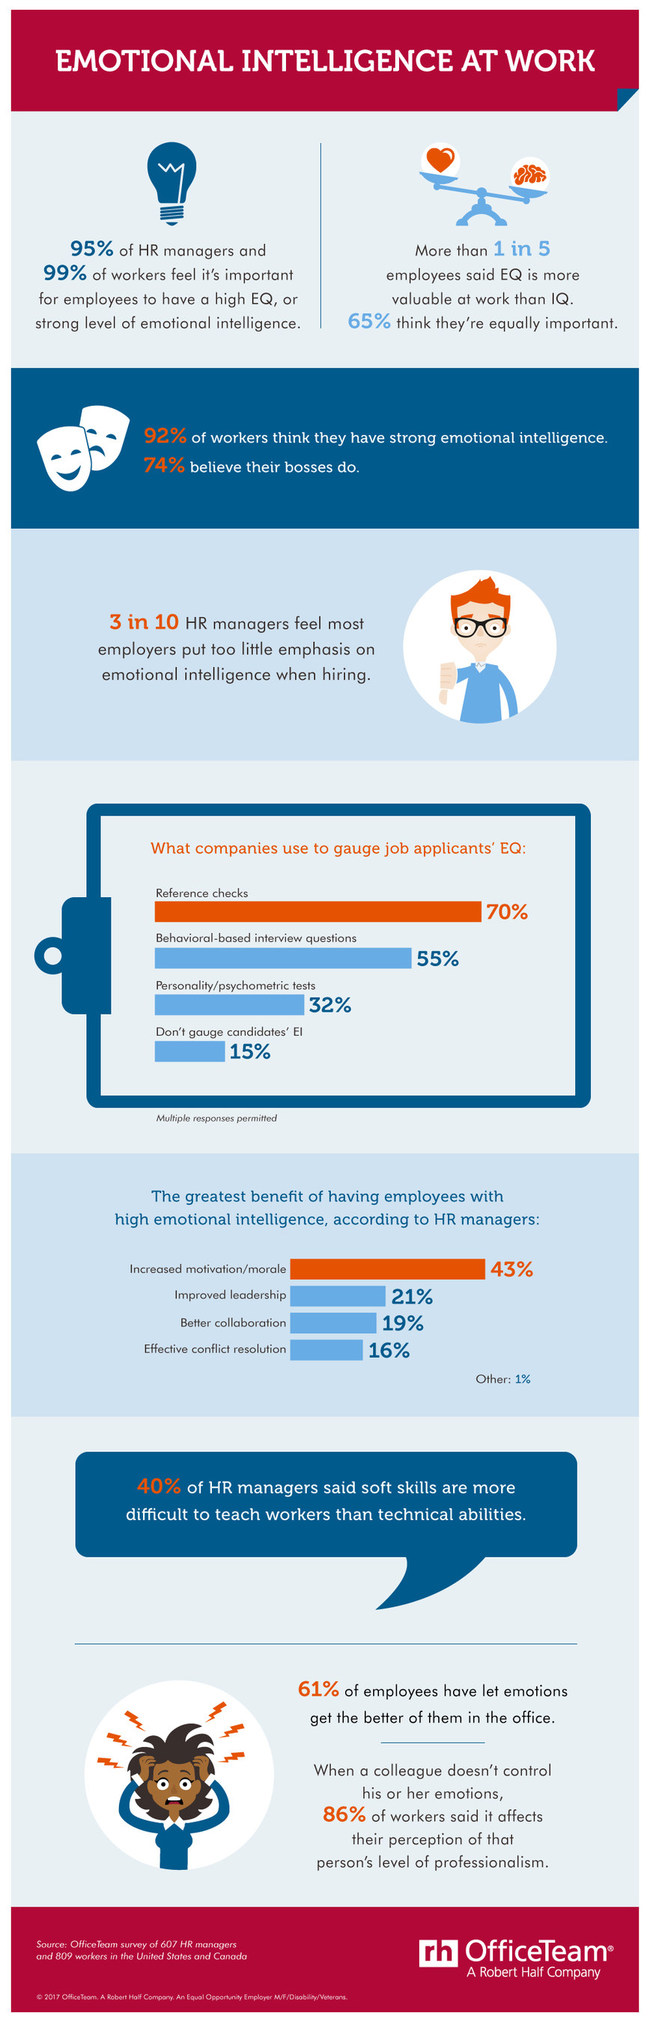 According to an OfficeTeam survey, nearly all HR managers (95%) and workers (99%) said it's important for staff to have high emotional intelligence. More than 1 in 5 employees (21%) believe EQ is more valuable in the workplace than IQ. Check out additional stats in the infographic.